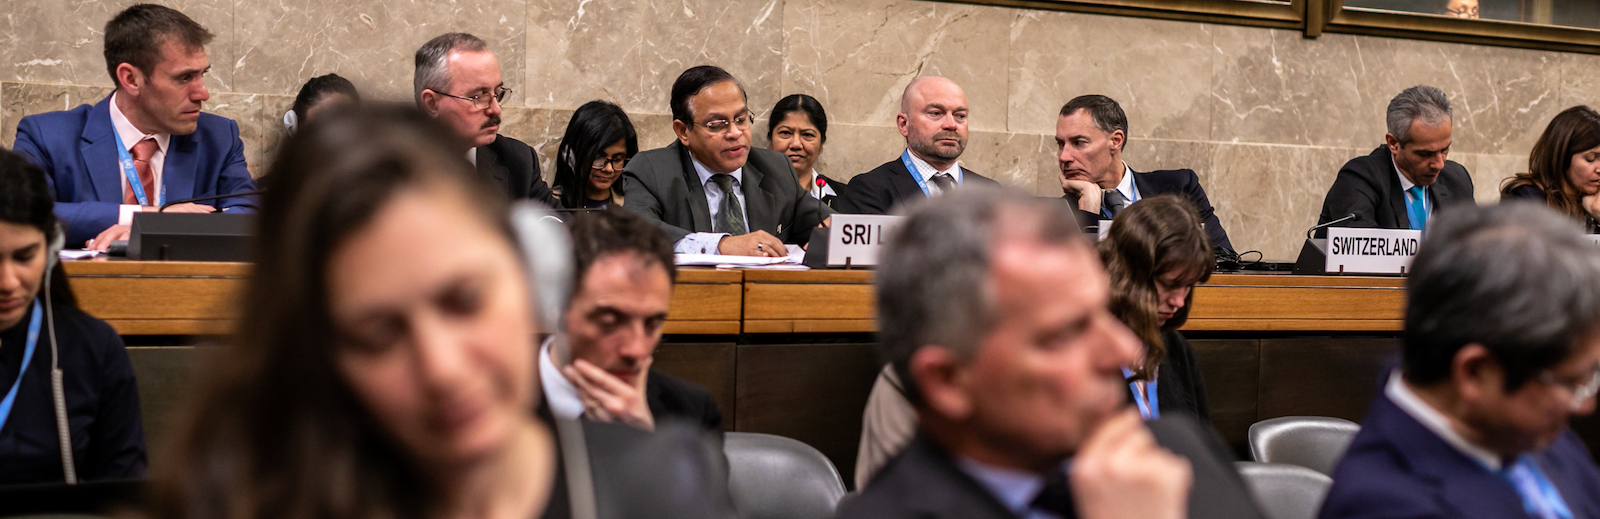 Ambassador of Sri Lanka to the United Nations addresses the Conference on Disarmament's High-Level Segment 2019 (Photo: UN Geneva/ Flickr)